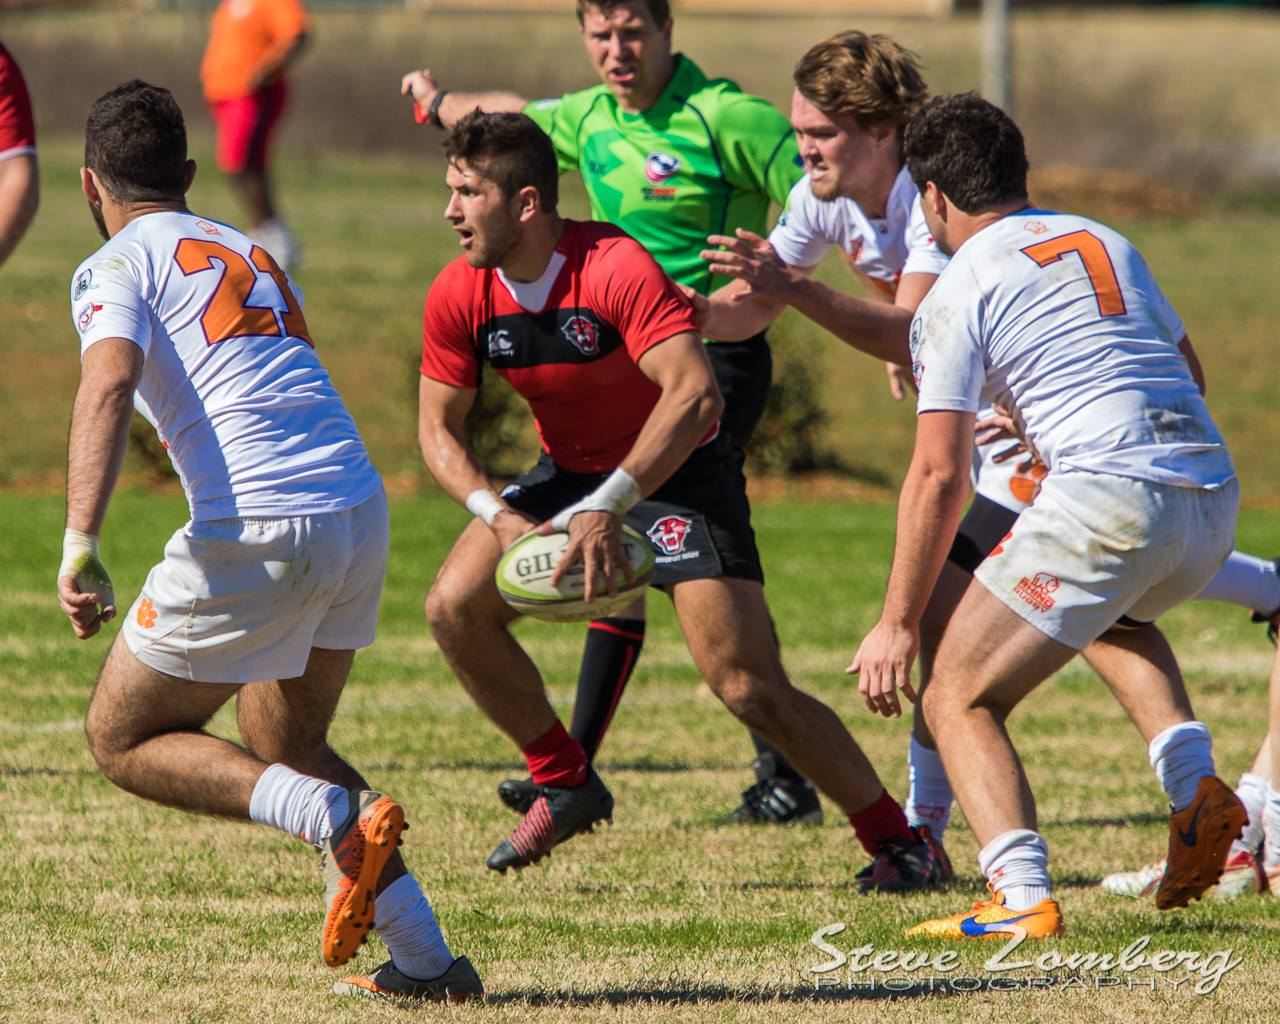 Davenport v Clemson rugby Feb 18 2017. Steven Zomberg photo.